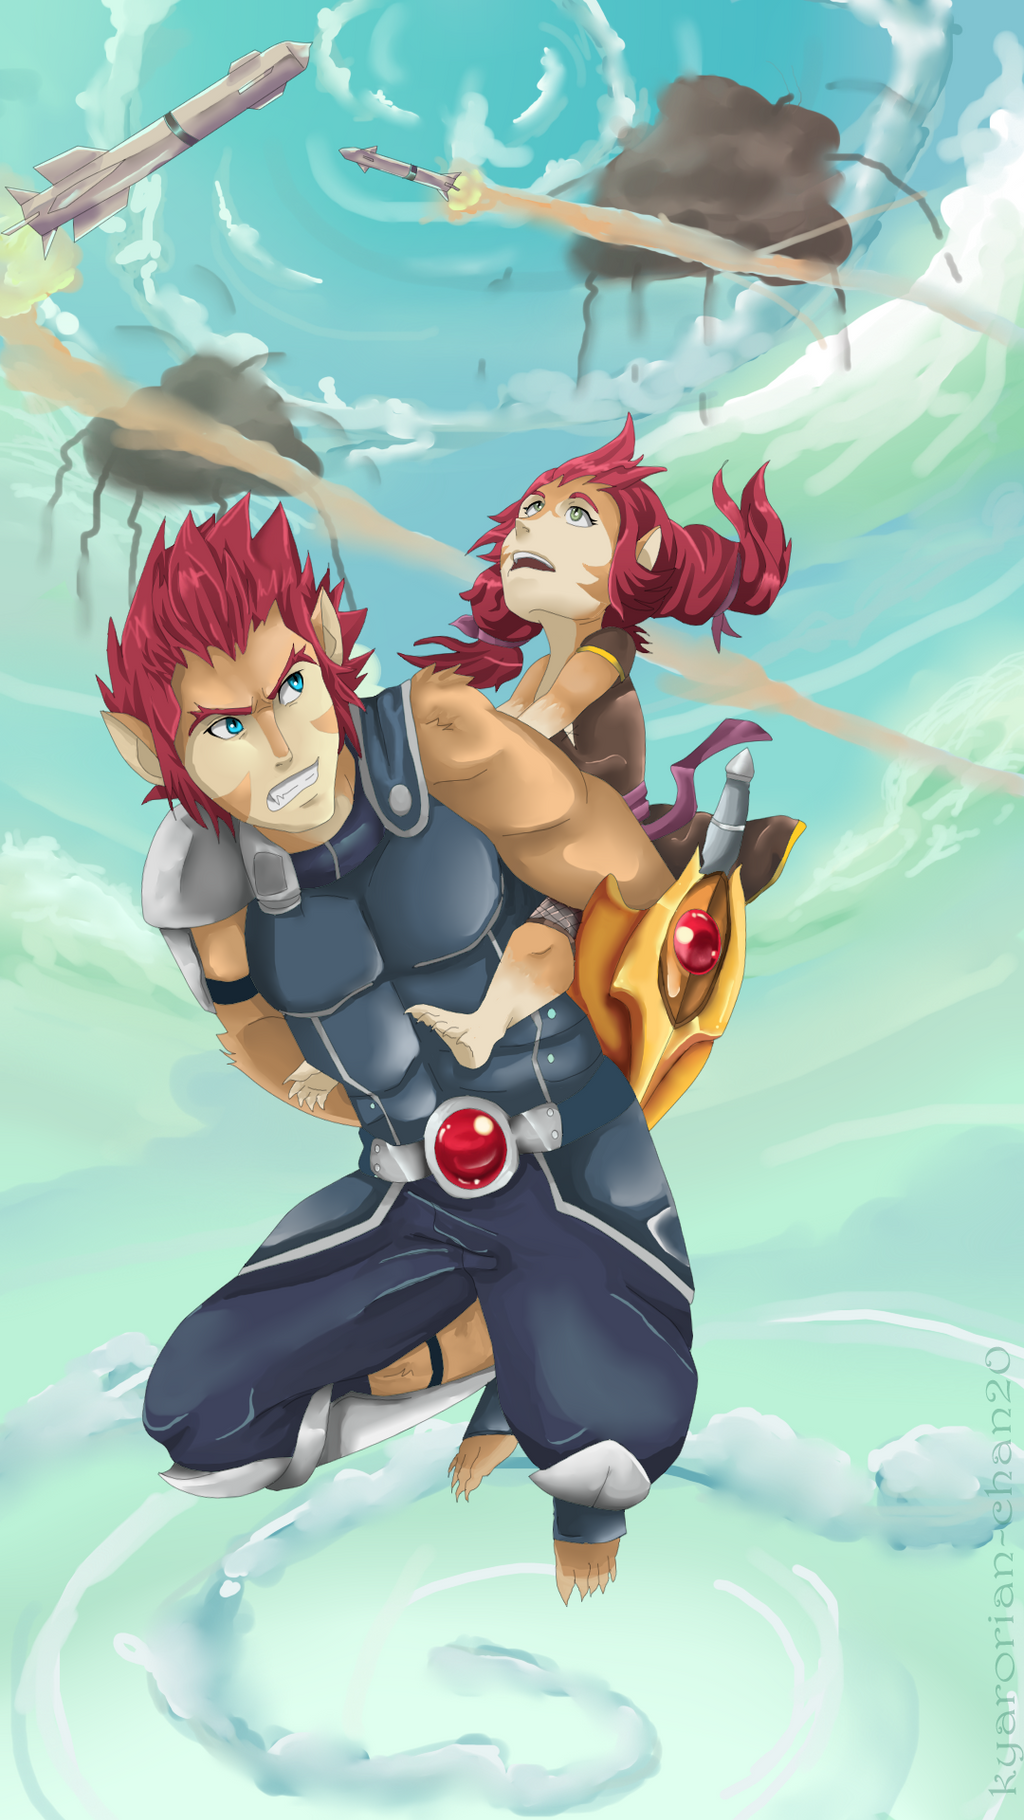 Anime Characters React Fanfiction : Request lion o and maynus by serena moretti on deviantart